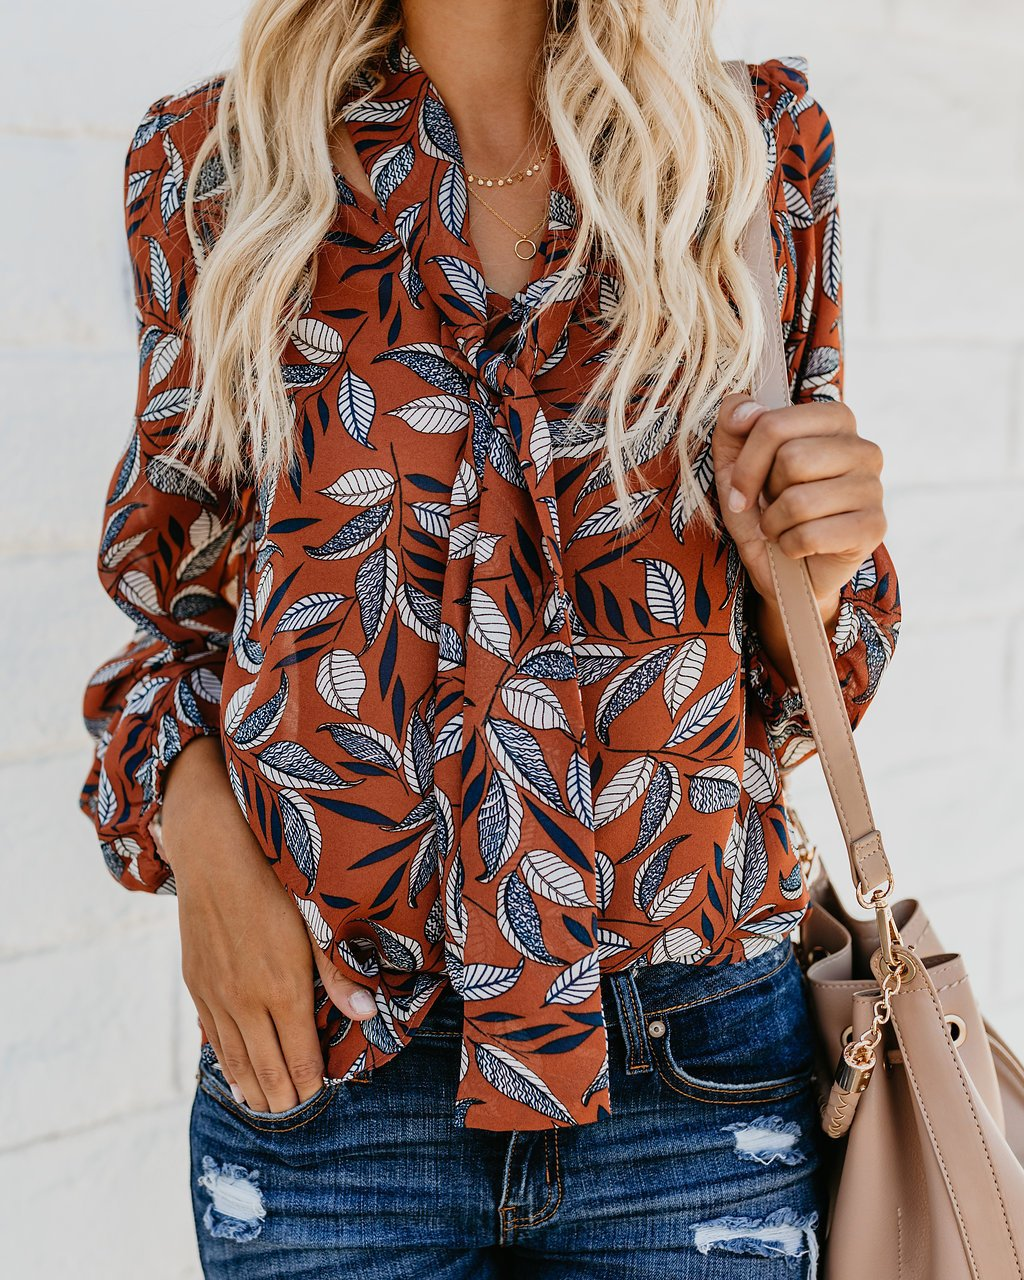 new women blouse fashion 2020 female womens top flower print  shirt ladies winter  festivals classics comfort clothing top xxl